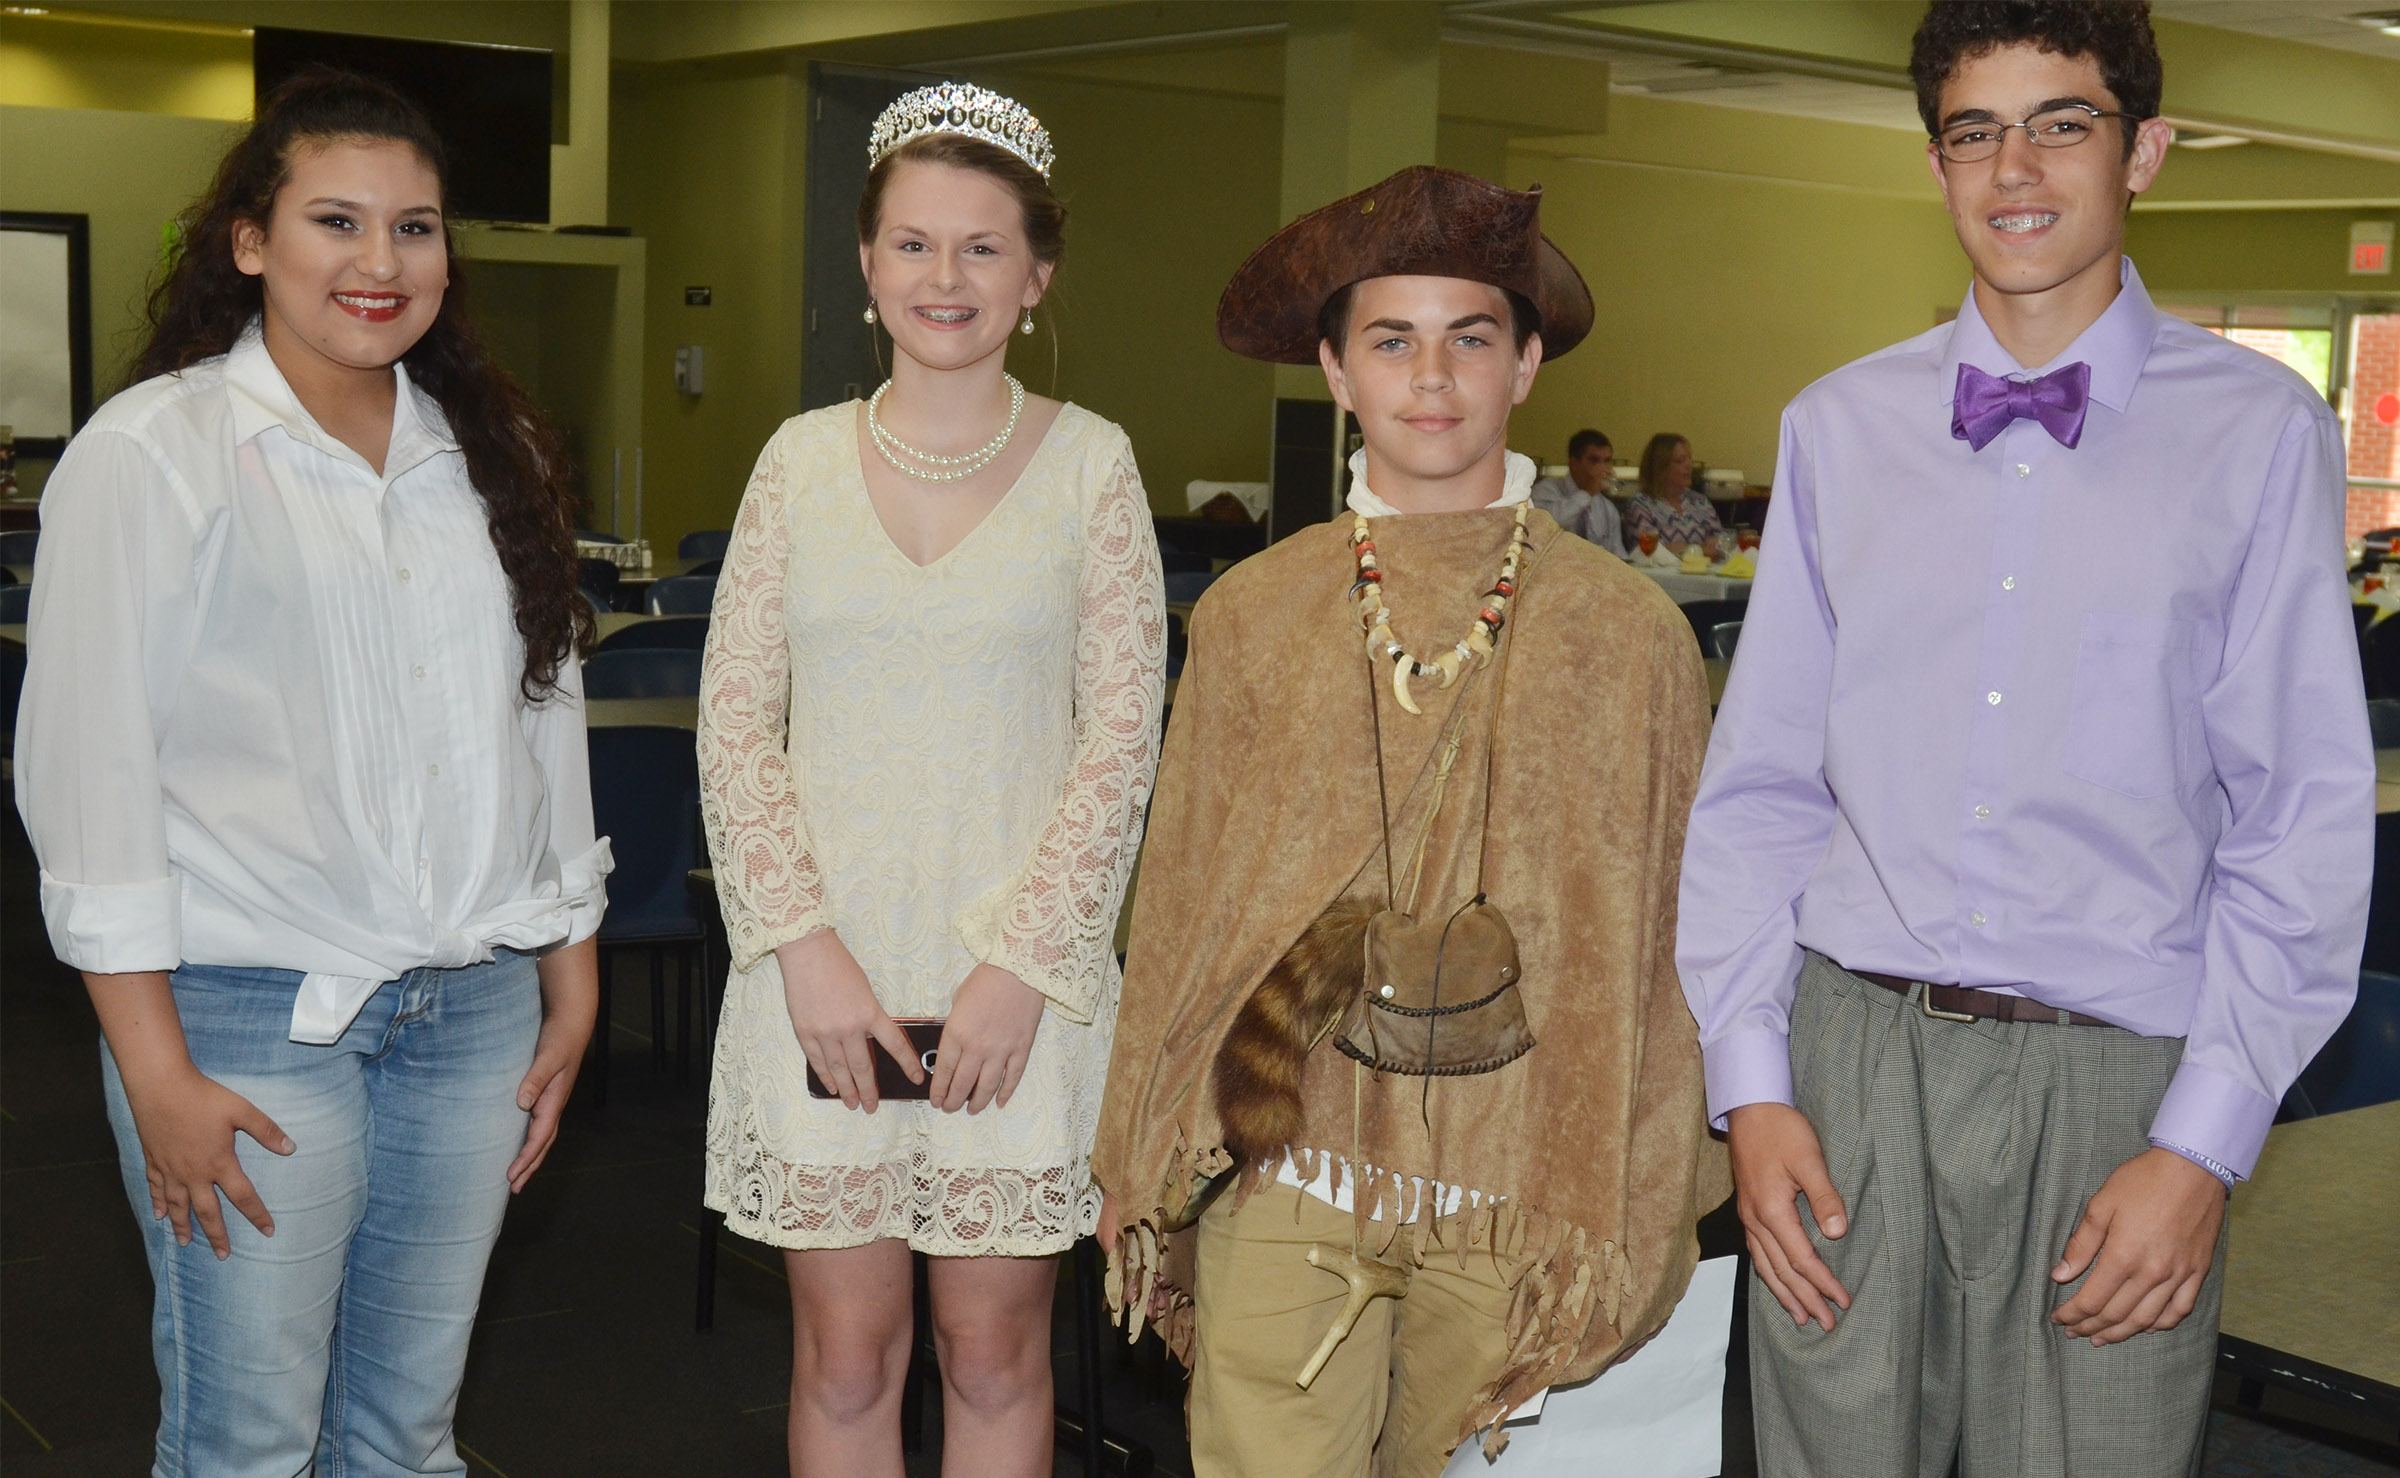 CMS eighth-graders recently completed Campbellsville University's leadership program, and, at a banquet in their honor, portrayed historical characters. From left are Anna Clara Moura portraying Salena, Taylor Knight portraying Princess Diana, Clark Kidwell portraying William Clark and Kameron Smith portraying Franklin D. Roosevelt.